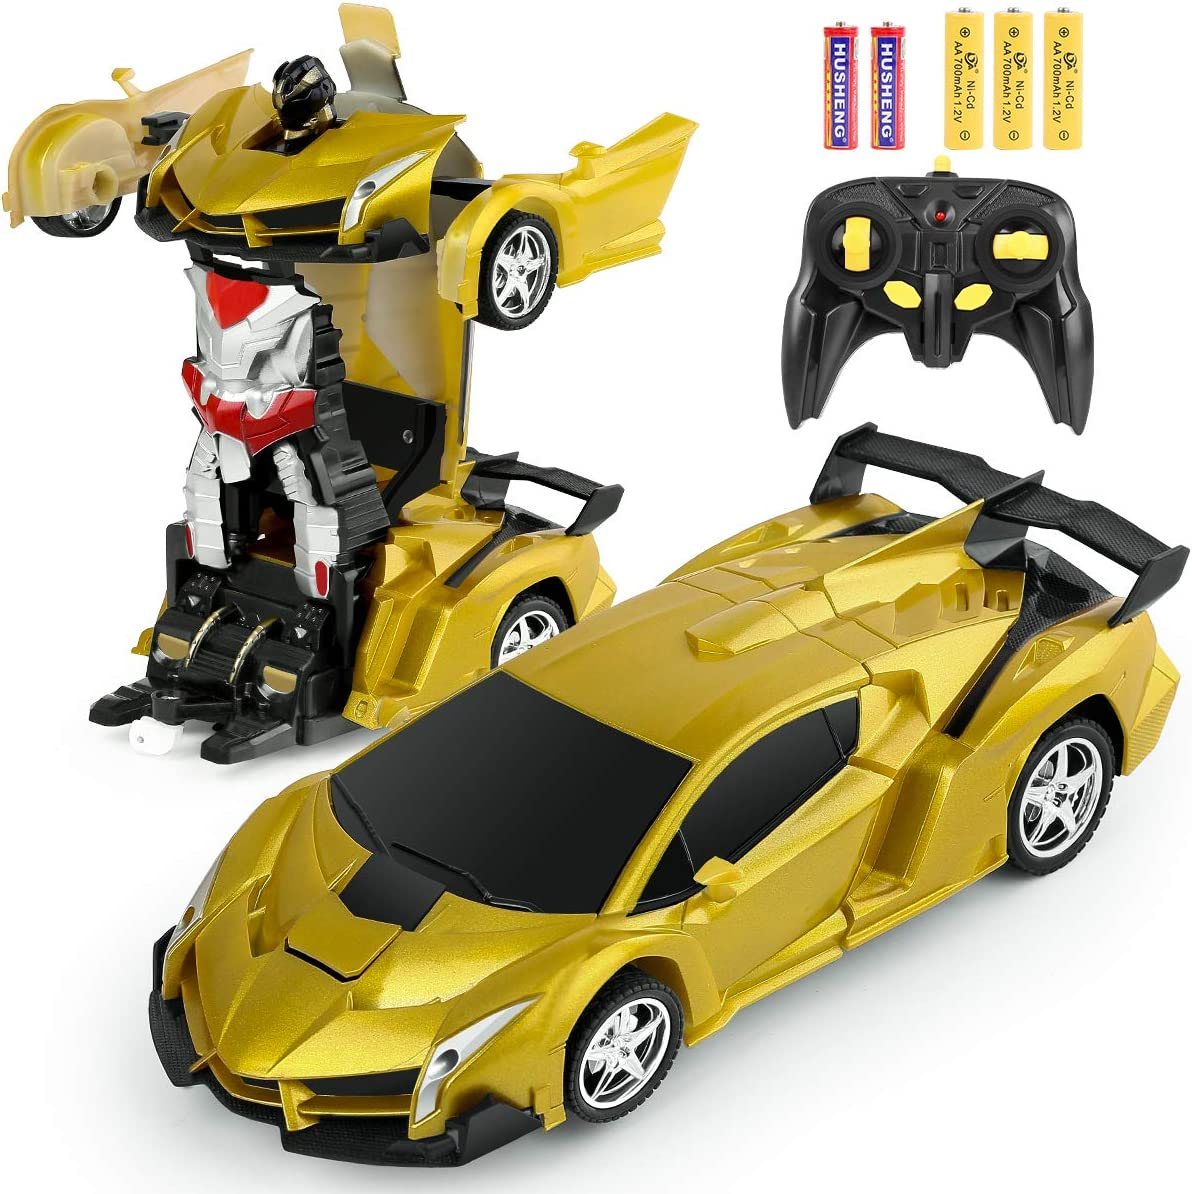 Image of a Yellow Bifyton Remote Control Car transforming into a robot with controller and batteries.